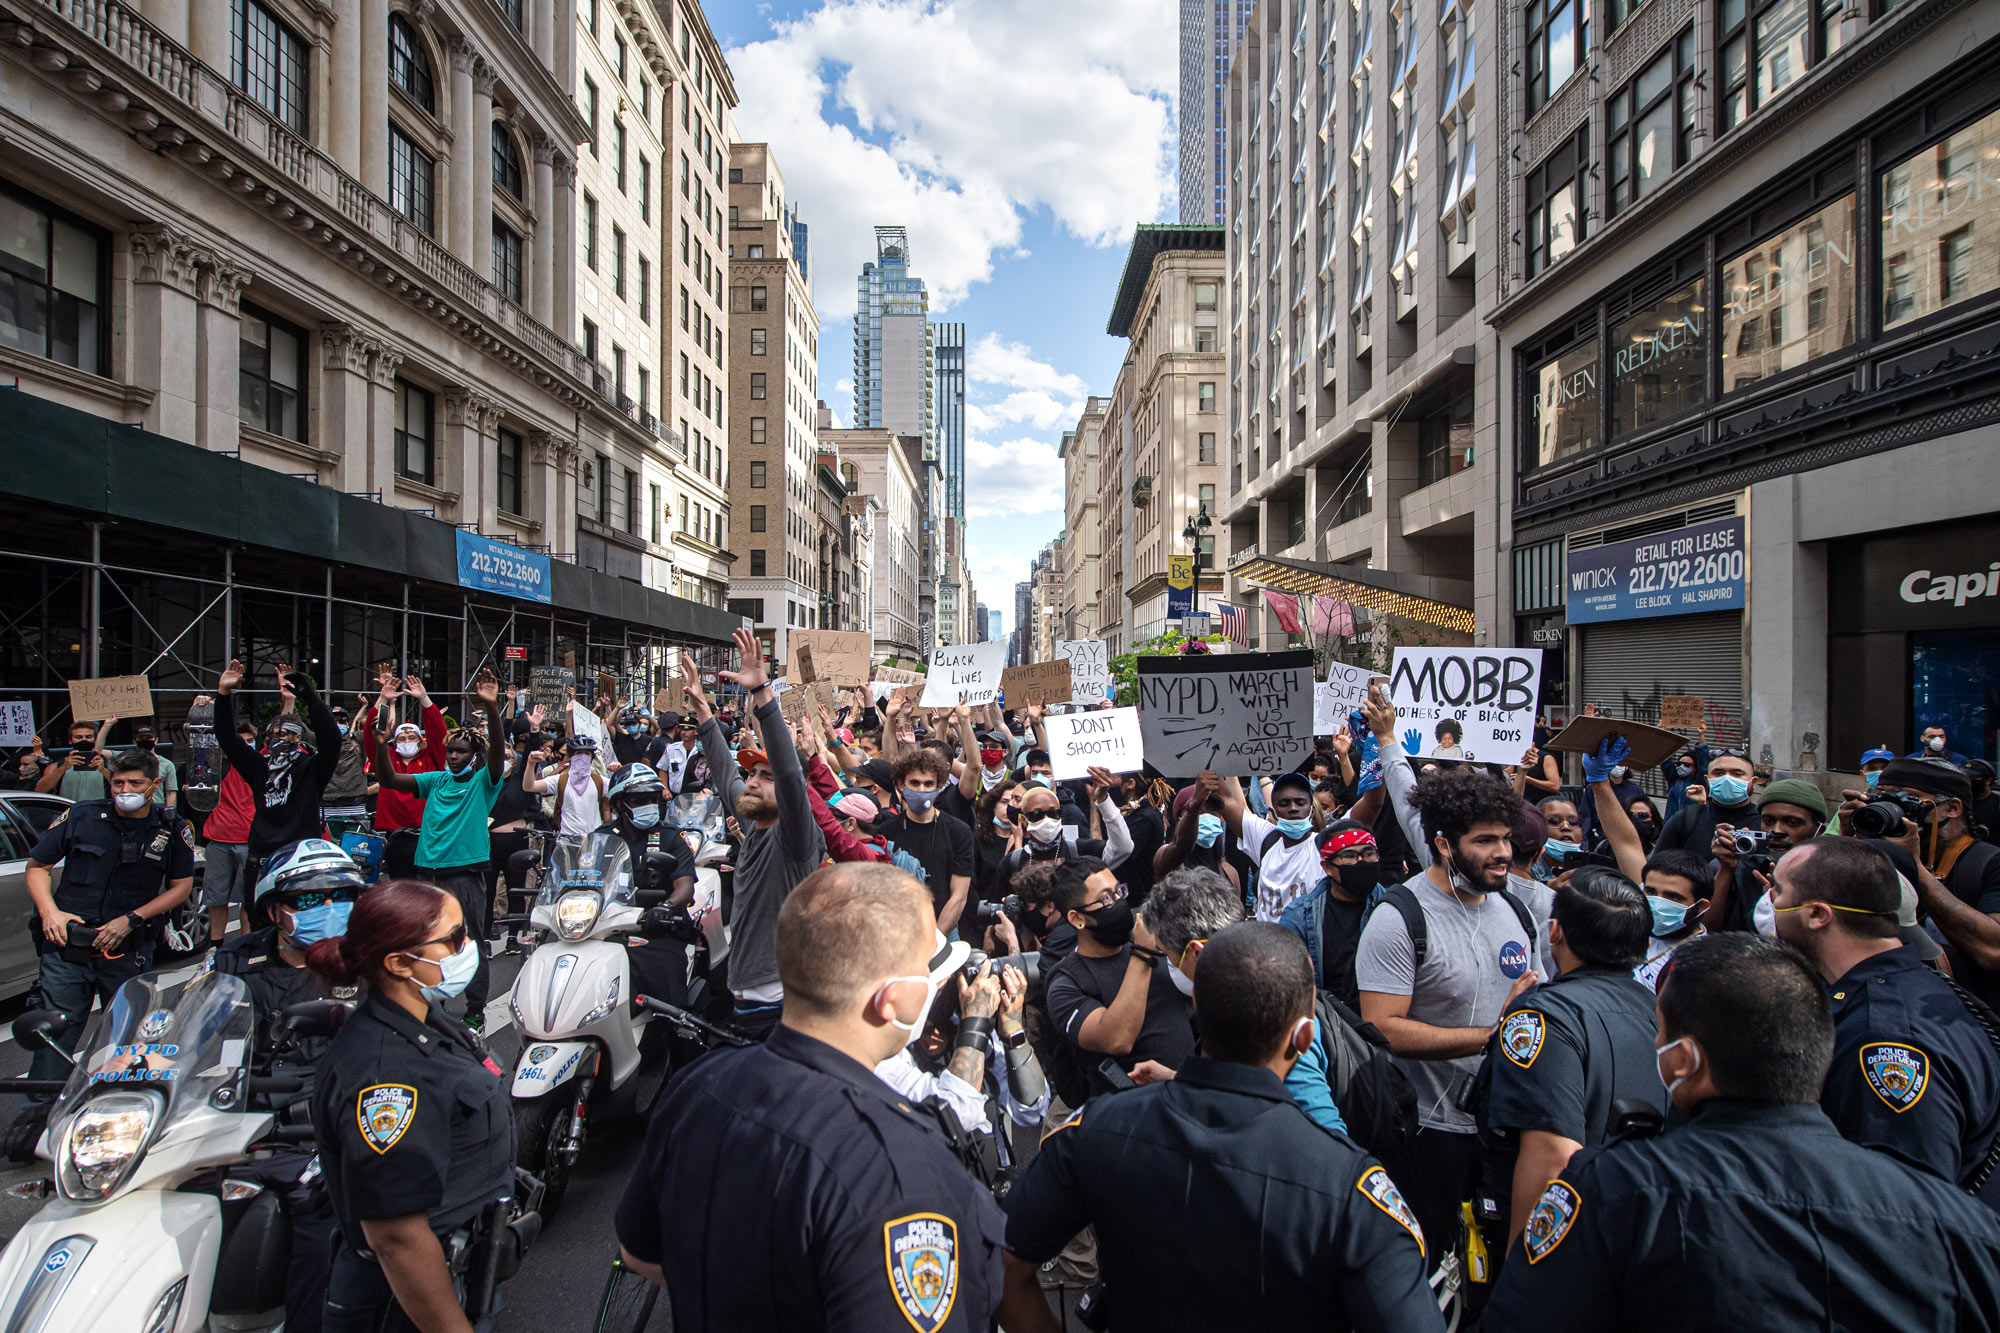 Demonstrators protest on May 31 in the Manhattan borough of New York City.